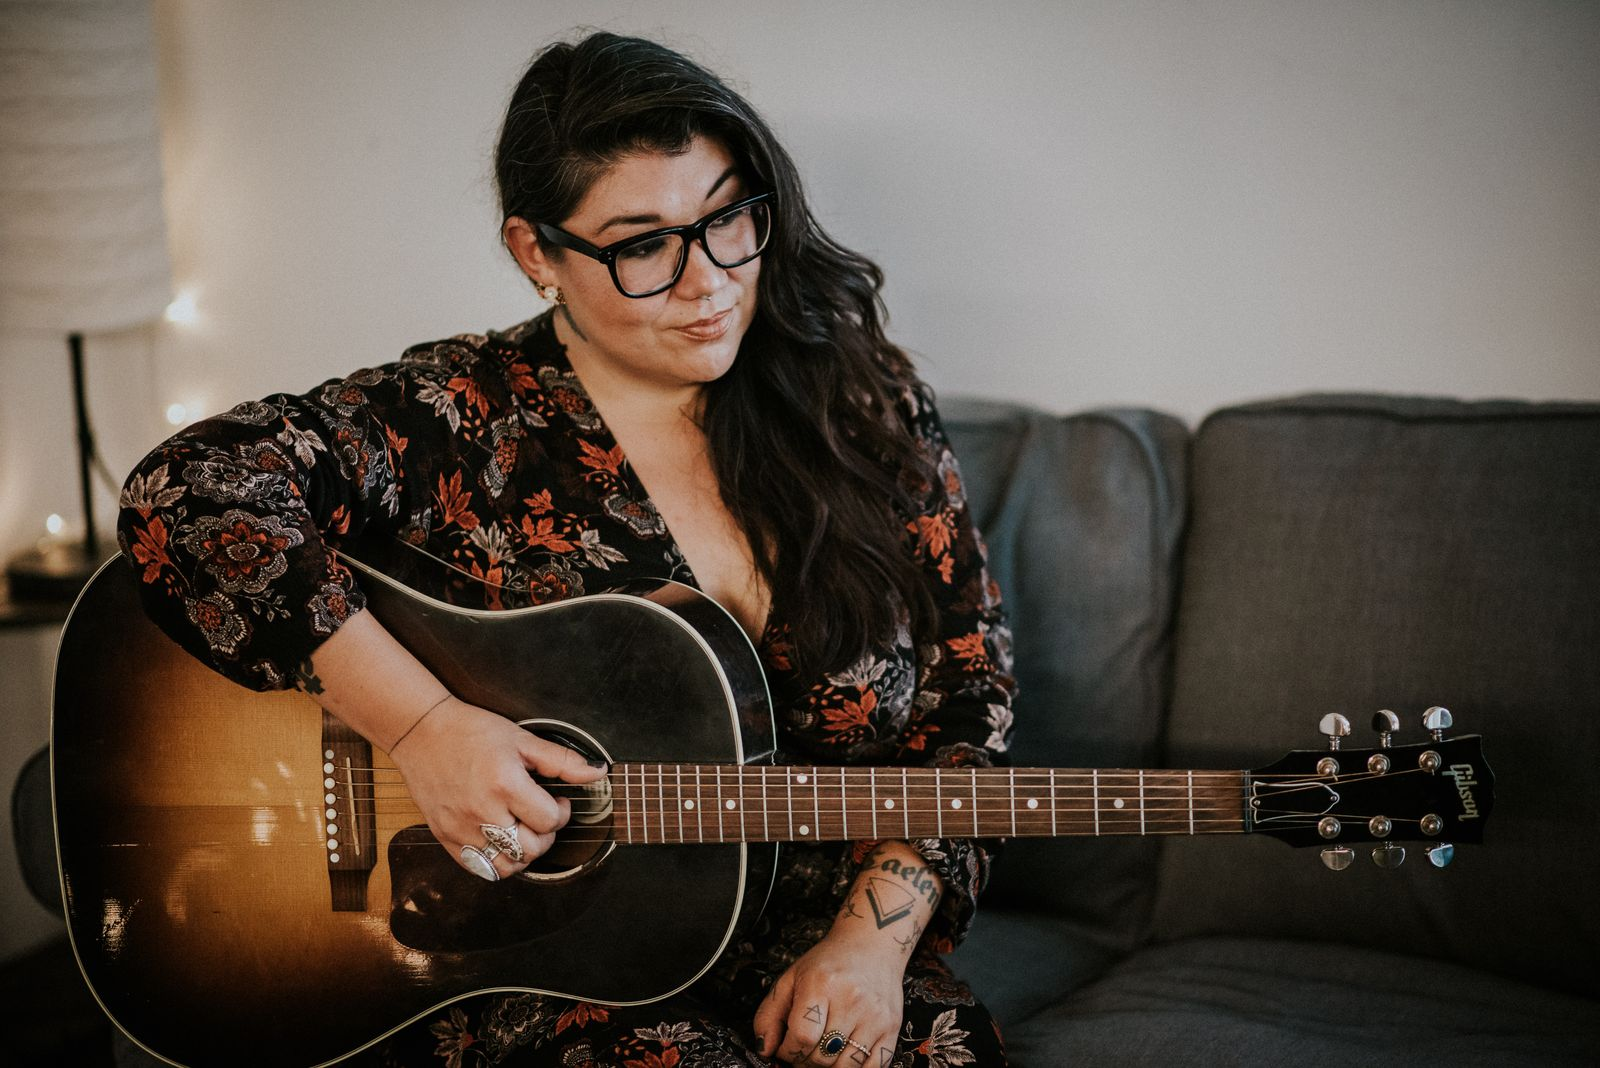 You Need to Listen to More Indigenous Artists